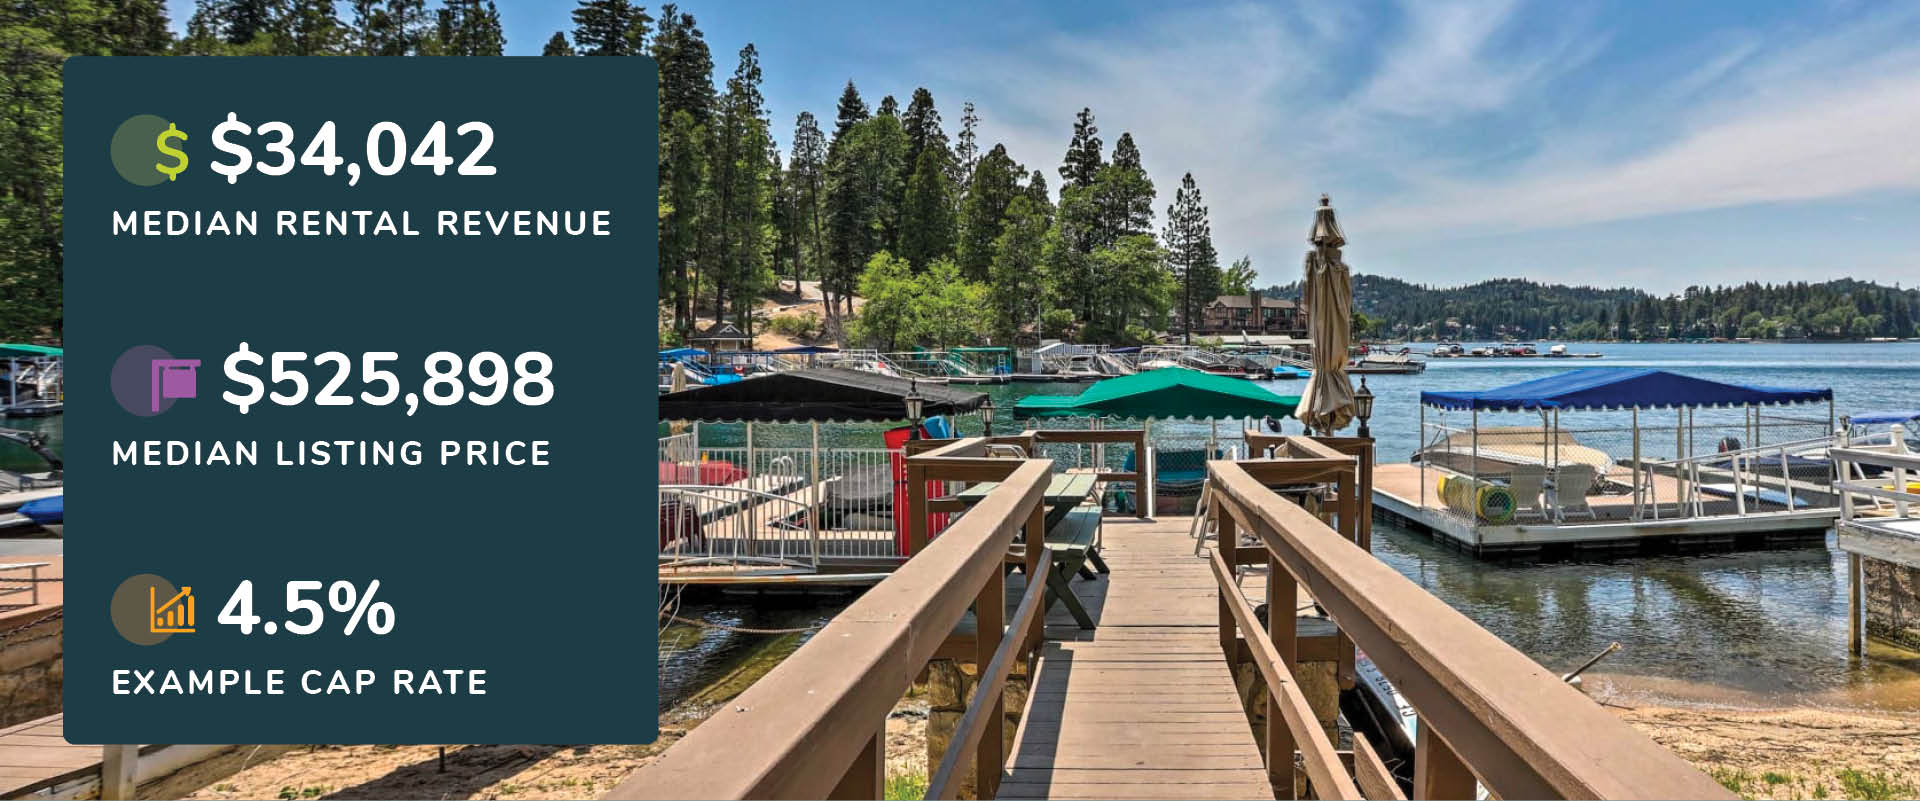 Graphic showing Big Bear Lake, California rental revenue, listing price, and cap rate with a picture of boats on the lake's dock